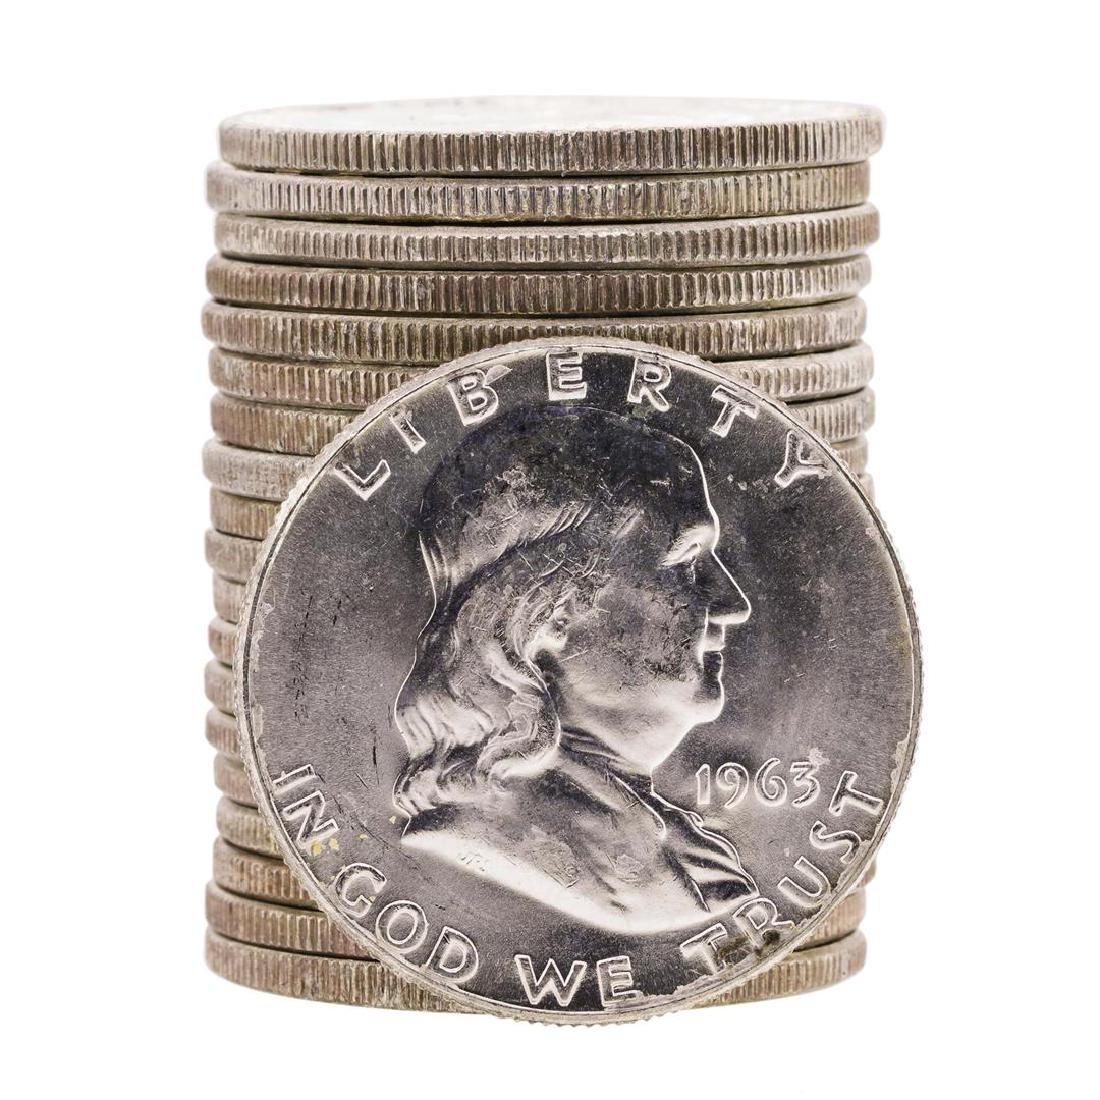 Roll of (20) 1963 Brilliant Uncirculated Franklin Half